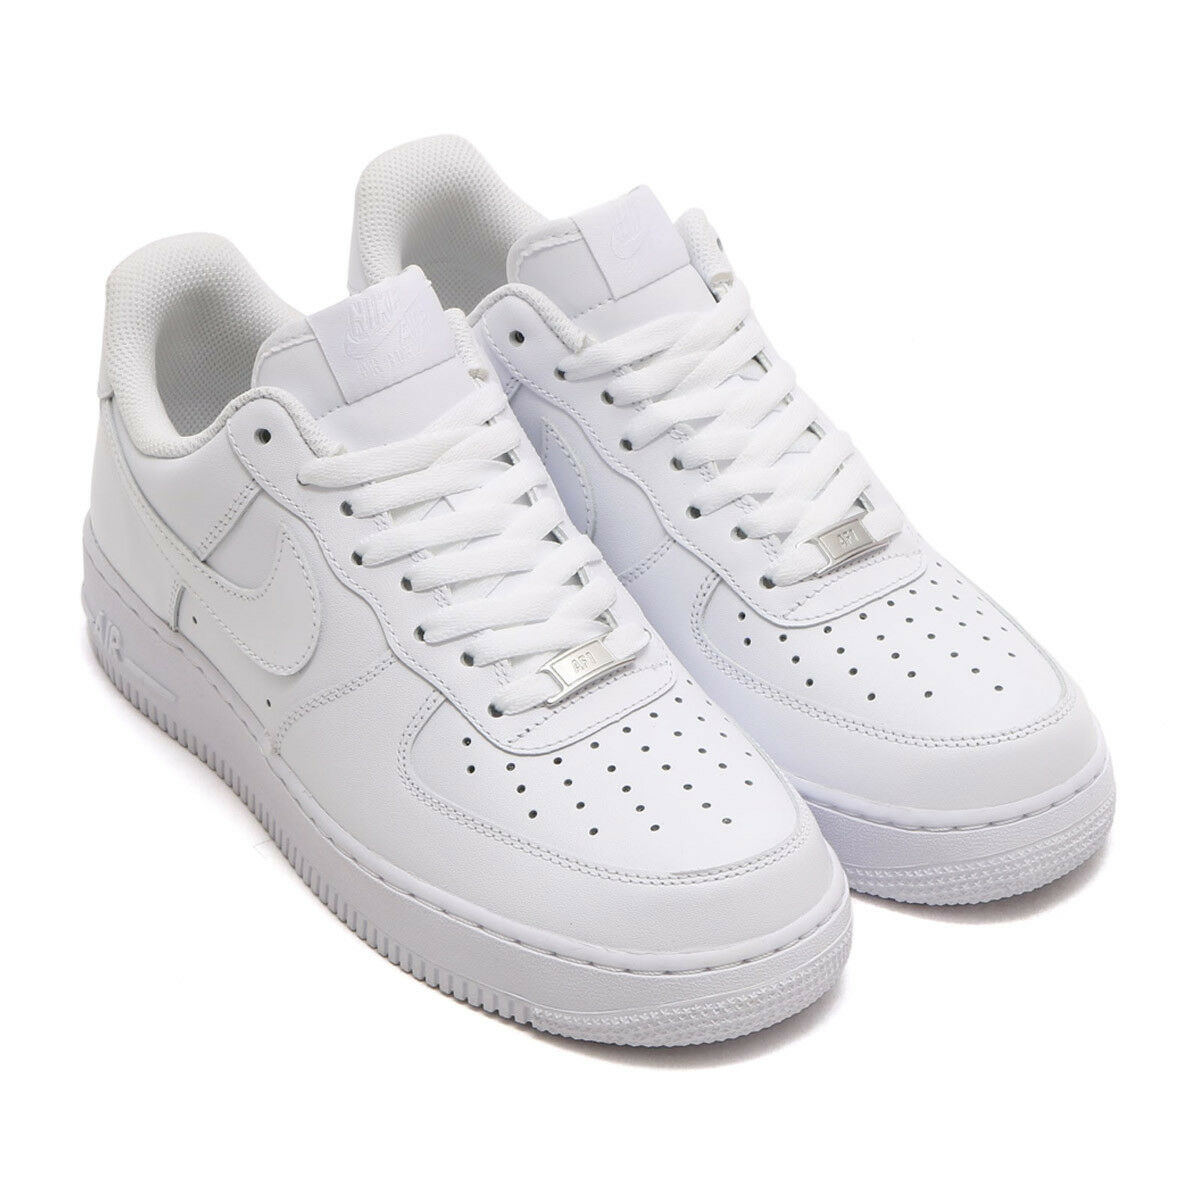 Nike Air Force 1 One 07' All White Mens 315122-111 Low Leather Shoes AF1 315122-111 Mens DS NWT 81bb8f